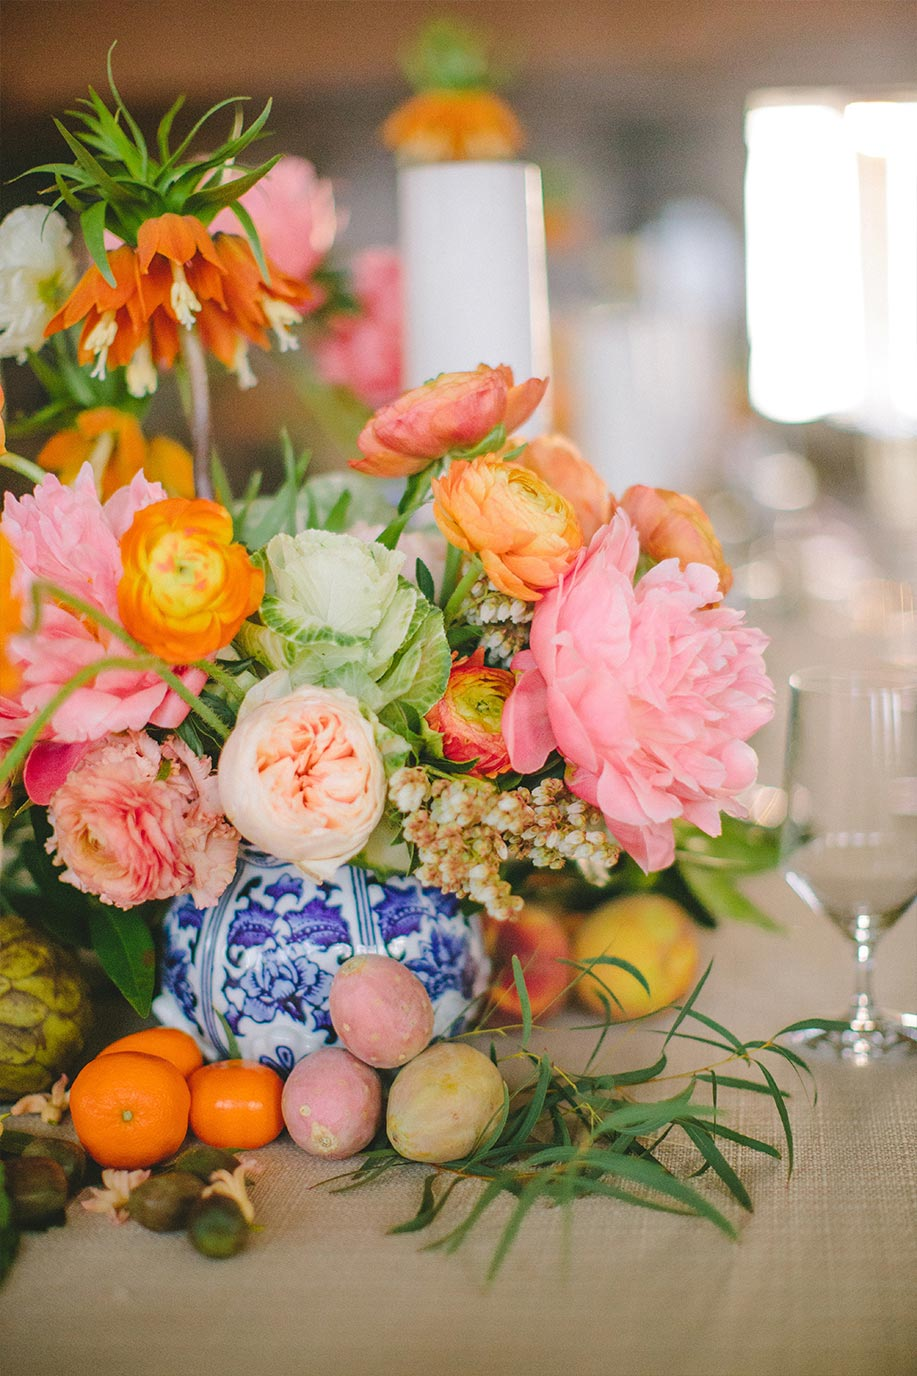 Pink and orange floral wedding centerpiece in blue and white porcelain vase with greenery and fruit